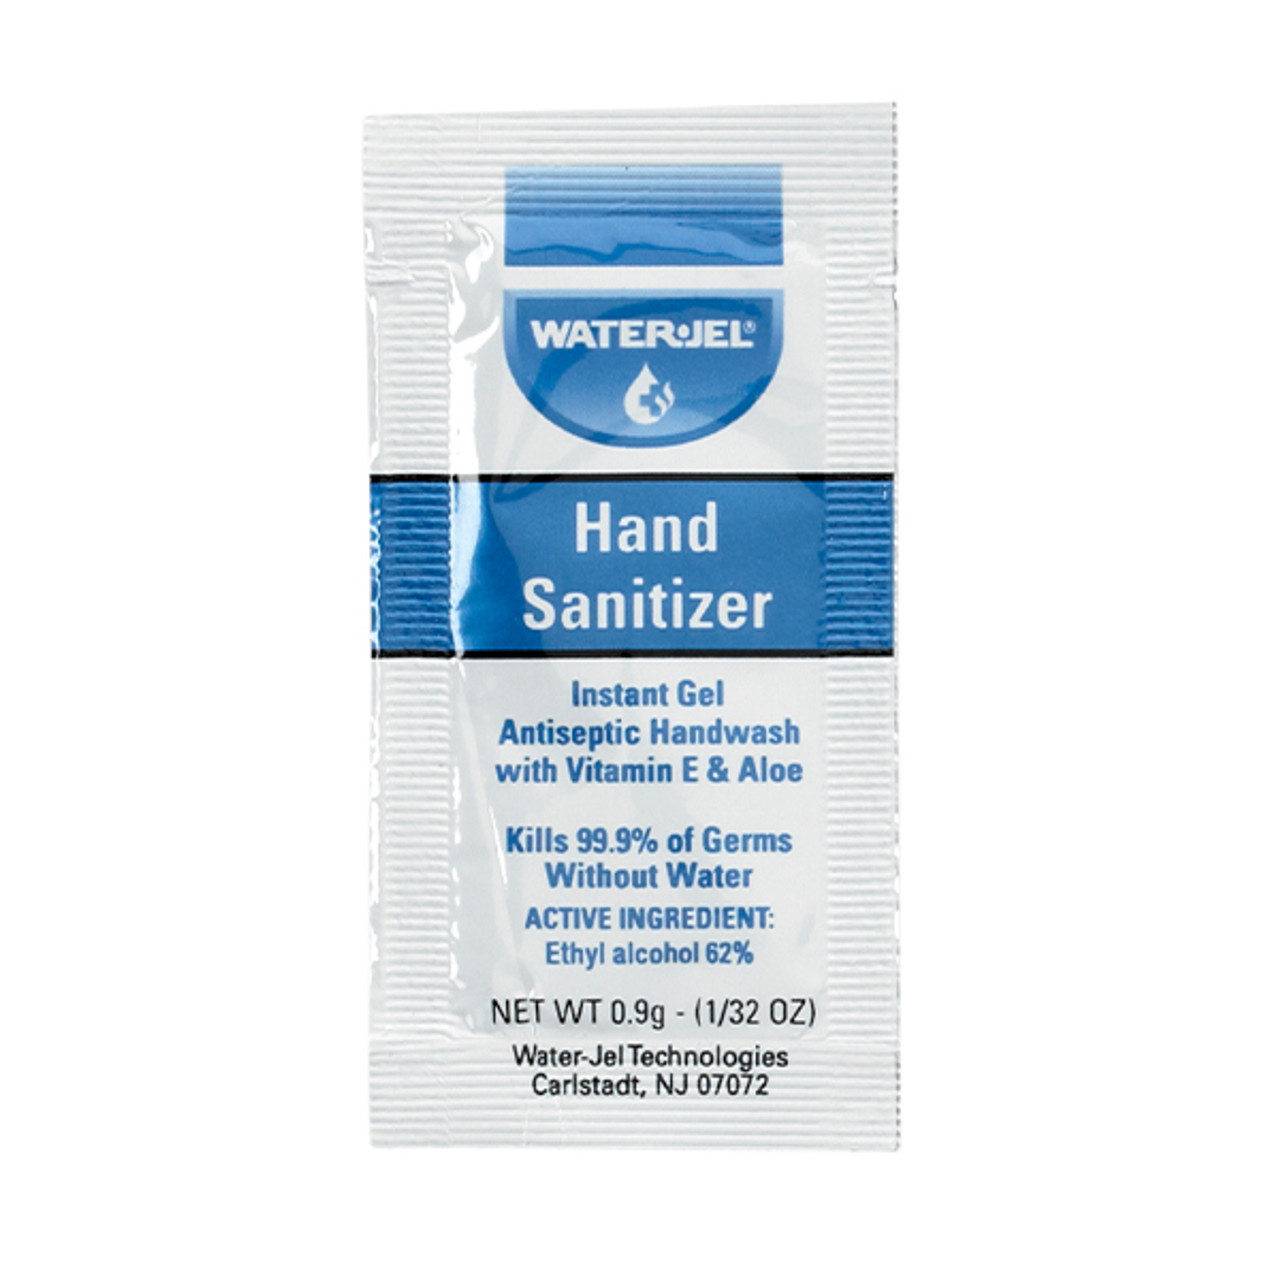 Hand Sanitizer To-Go Pocket Pack